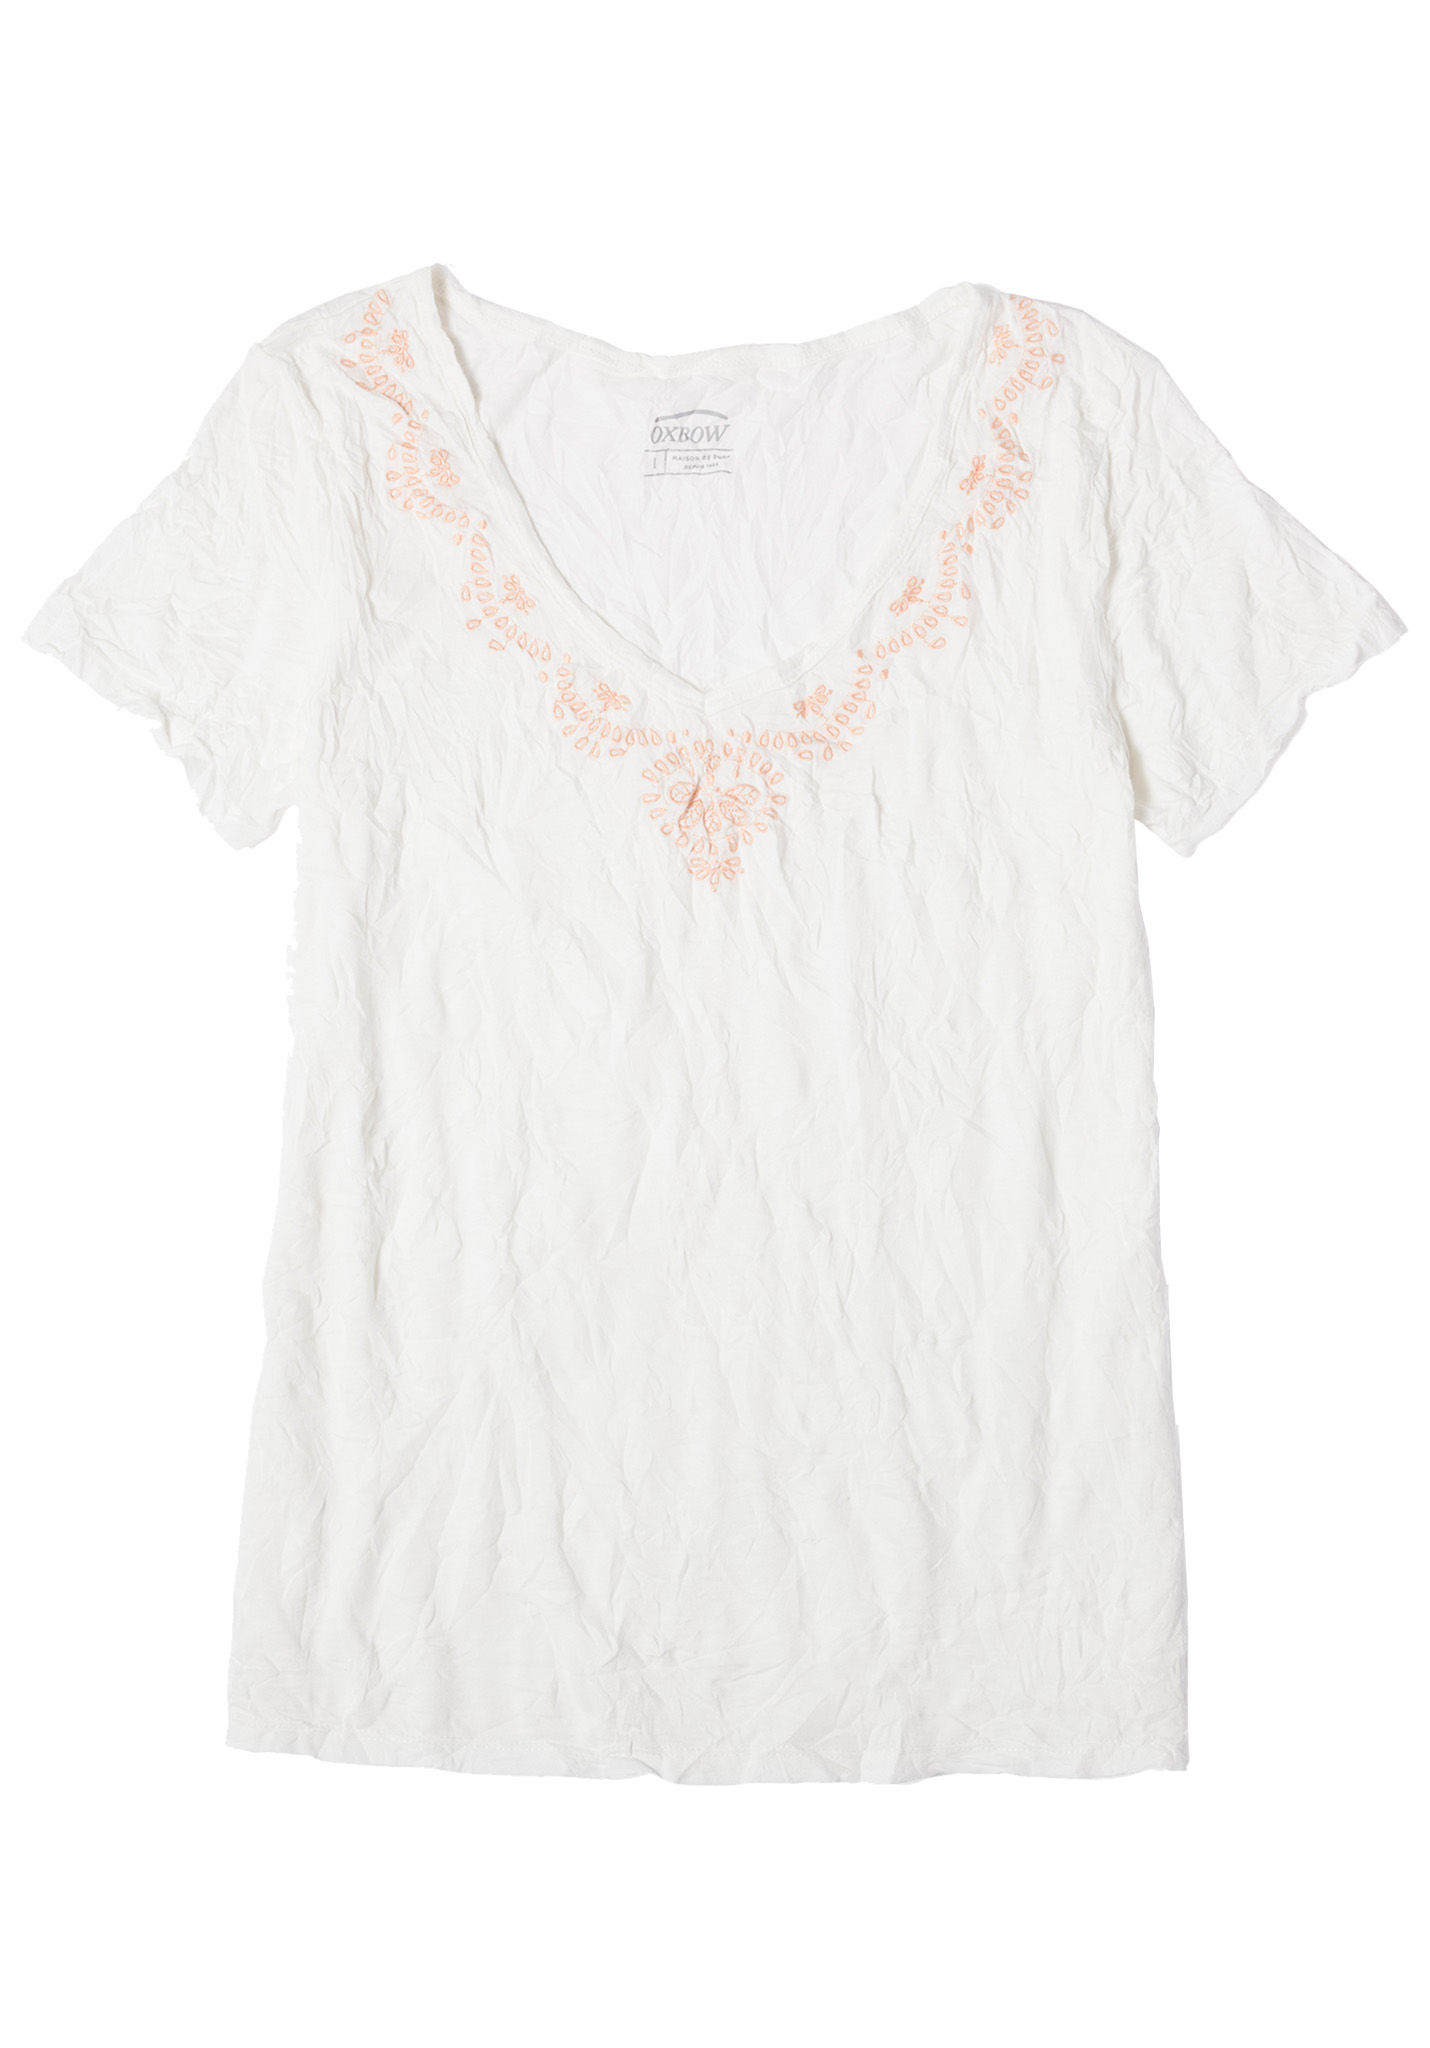 862b94f17 OXBOW Tomi - T-Shirt for Women - White - Planet Sports